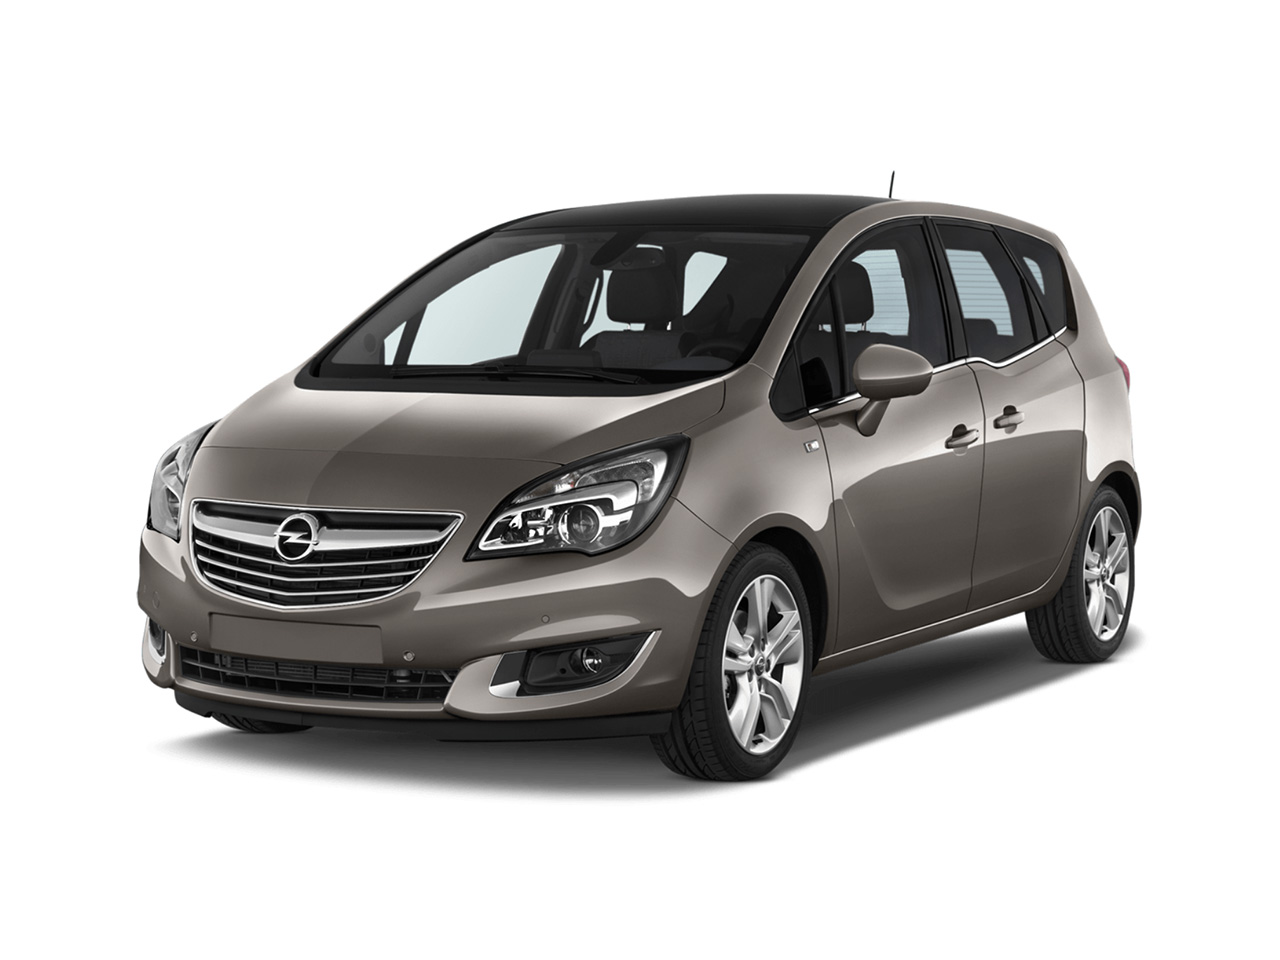 100 opel zafira 2018 vauxhall zafira breeze 1 6. Black Bedroom Furniture Sets. Home Design Ideas